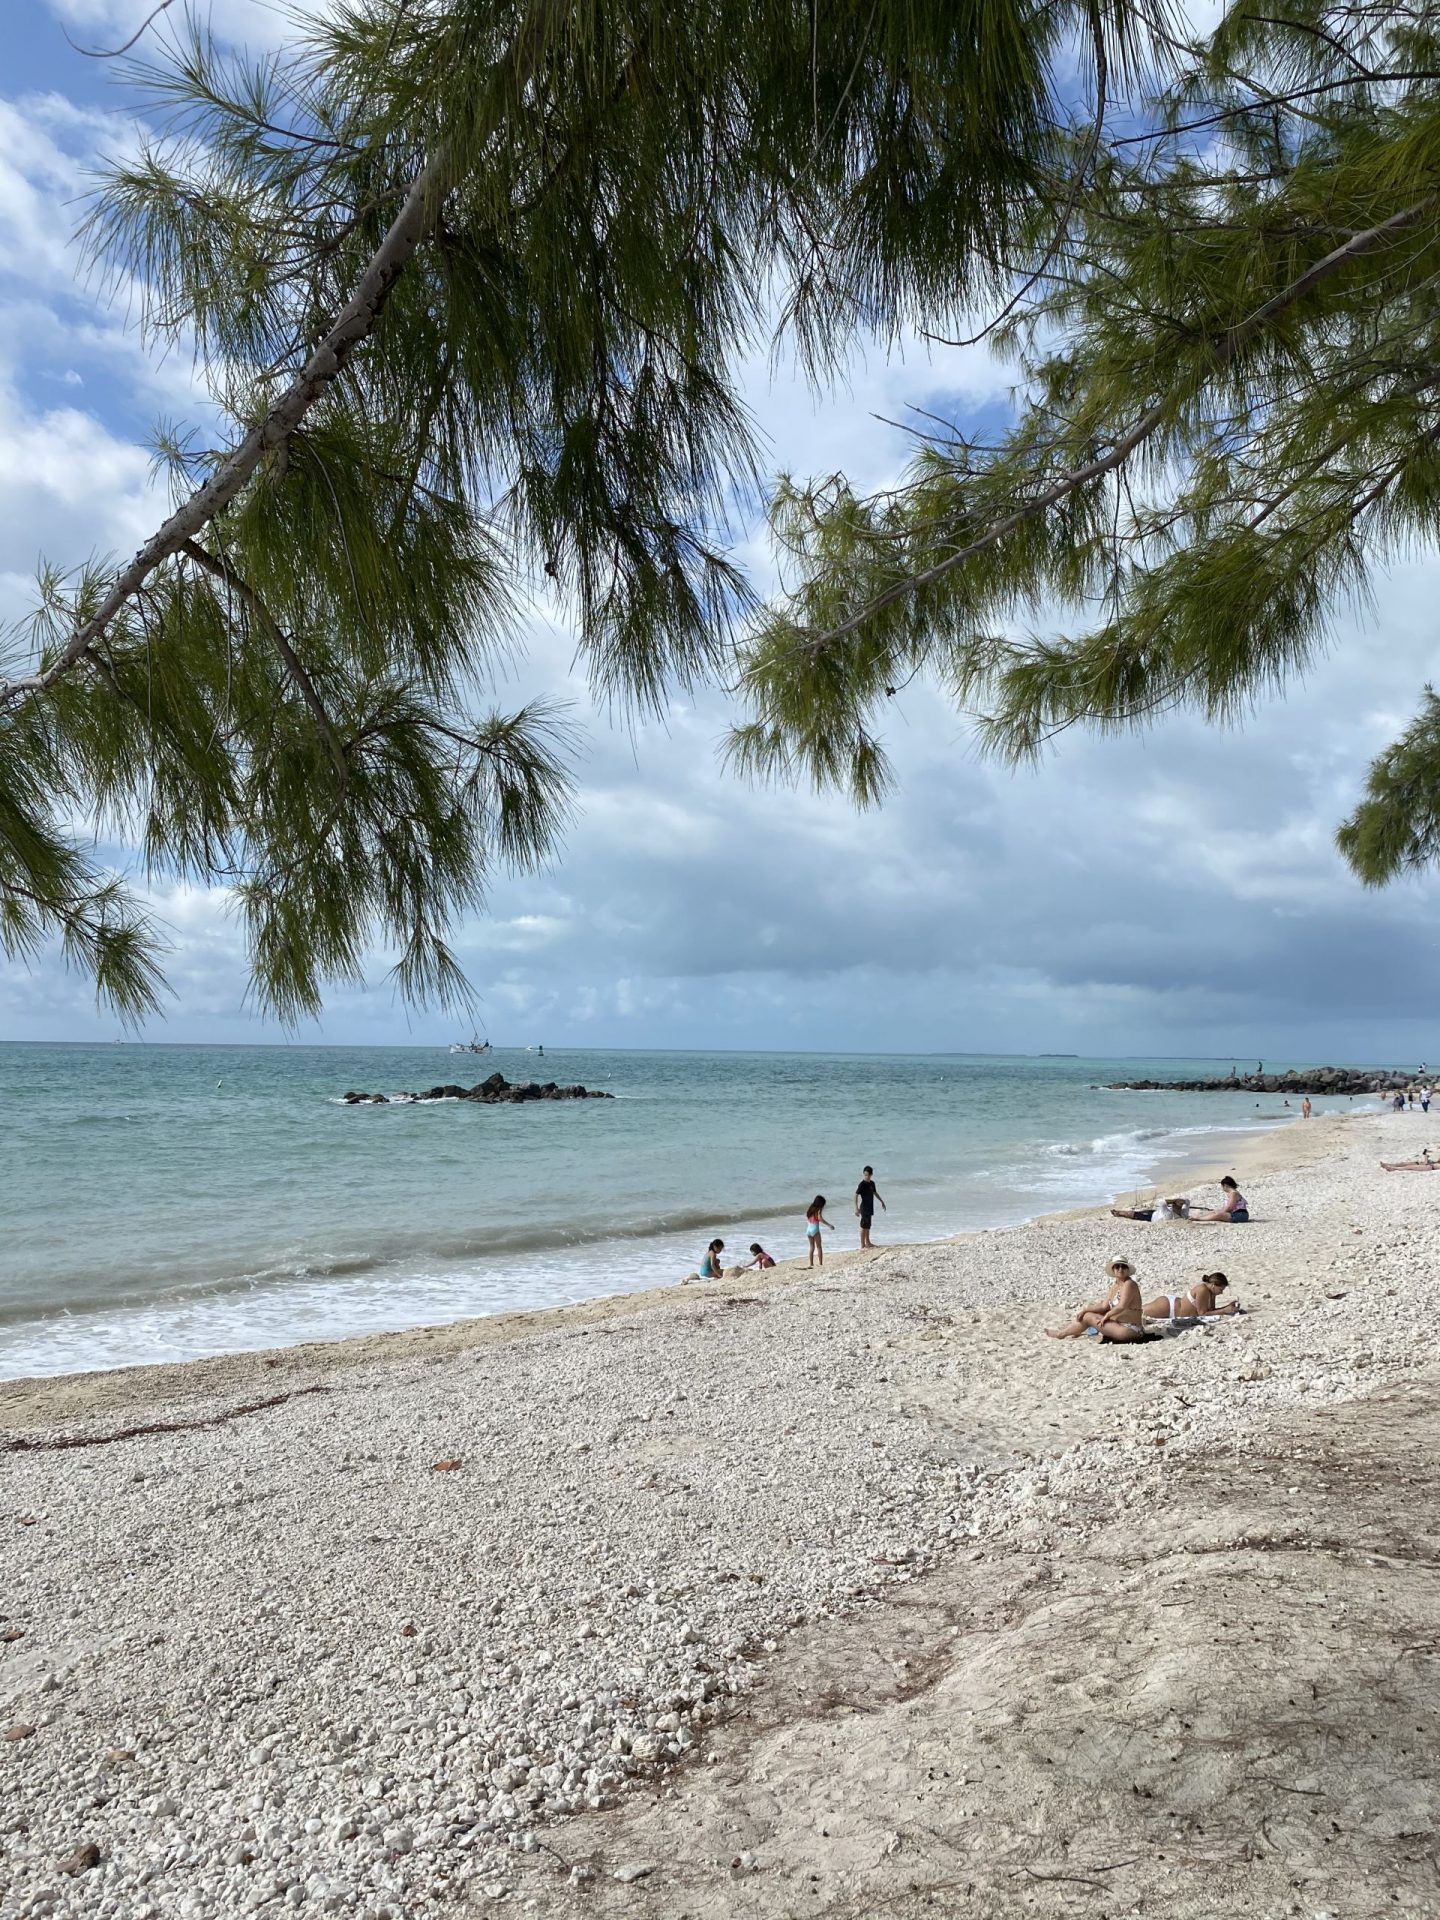 Fort Zachary Taylor Historic State Park